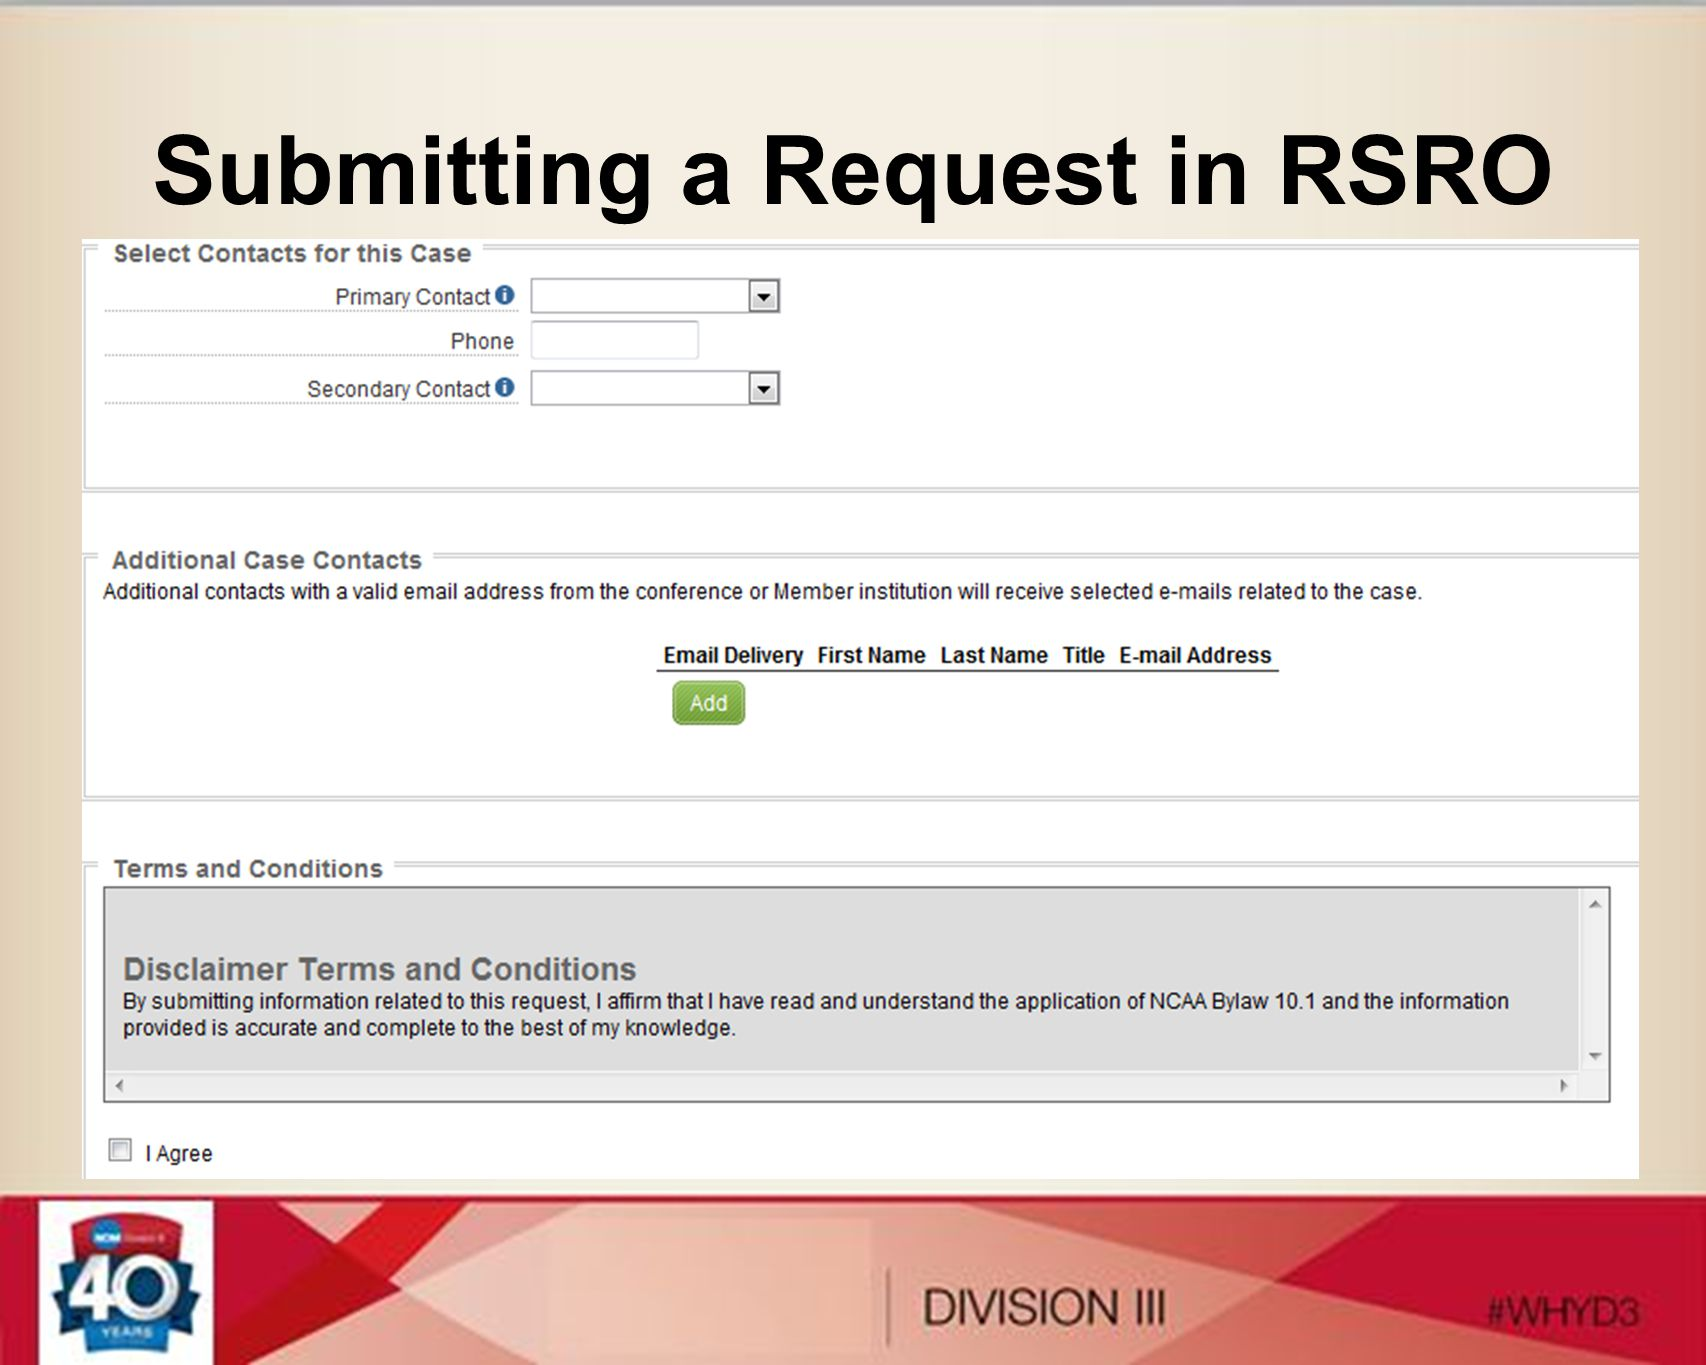 Submitting a Request in RSRO